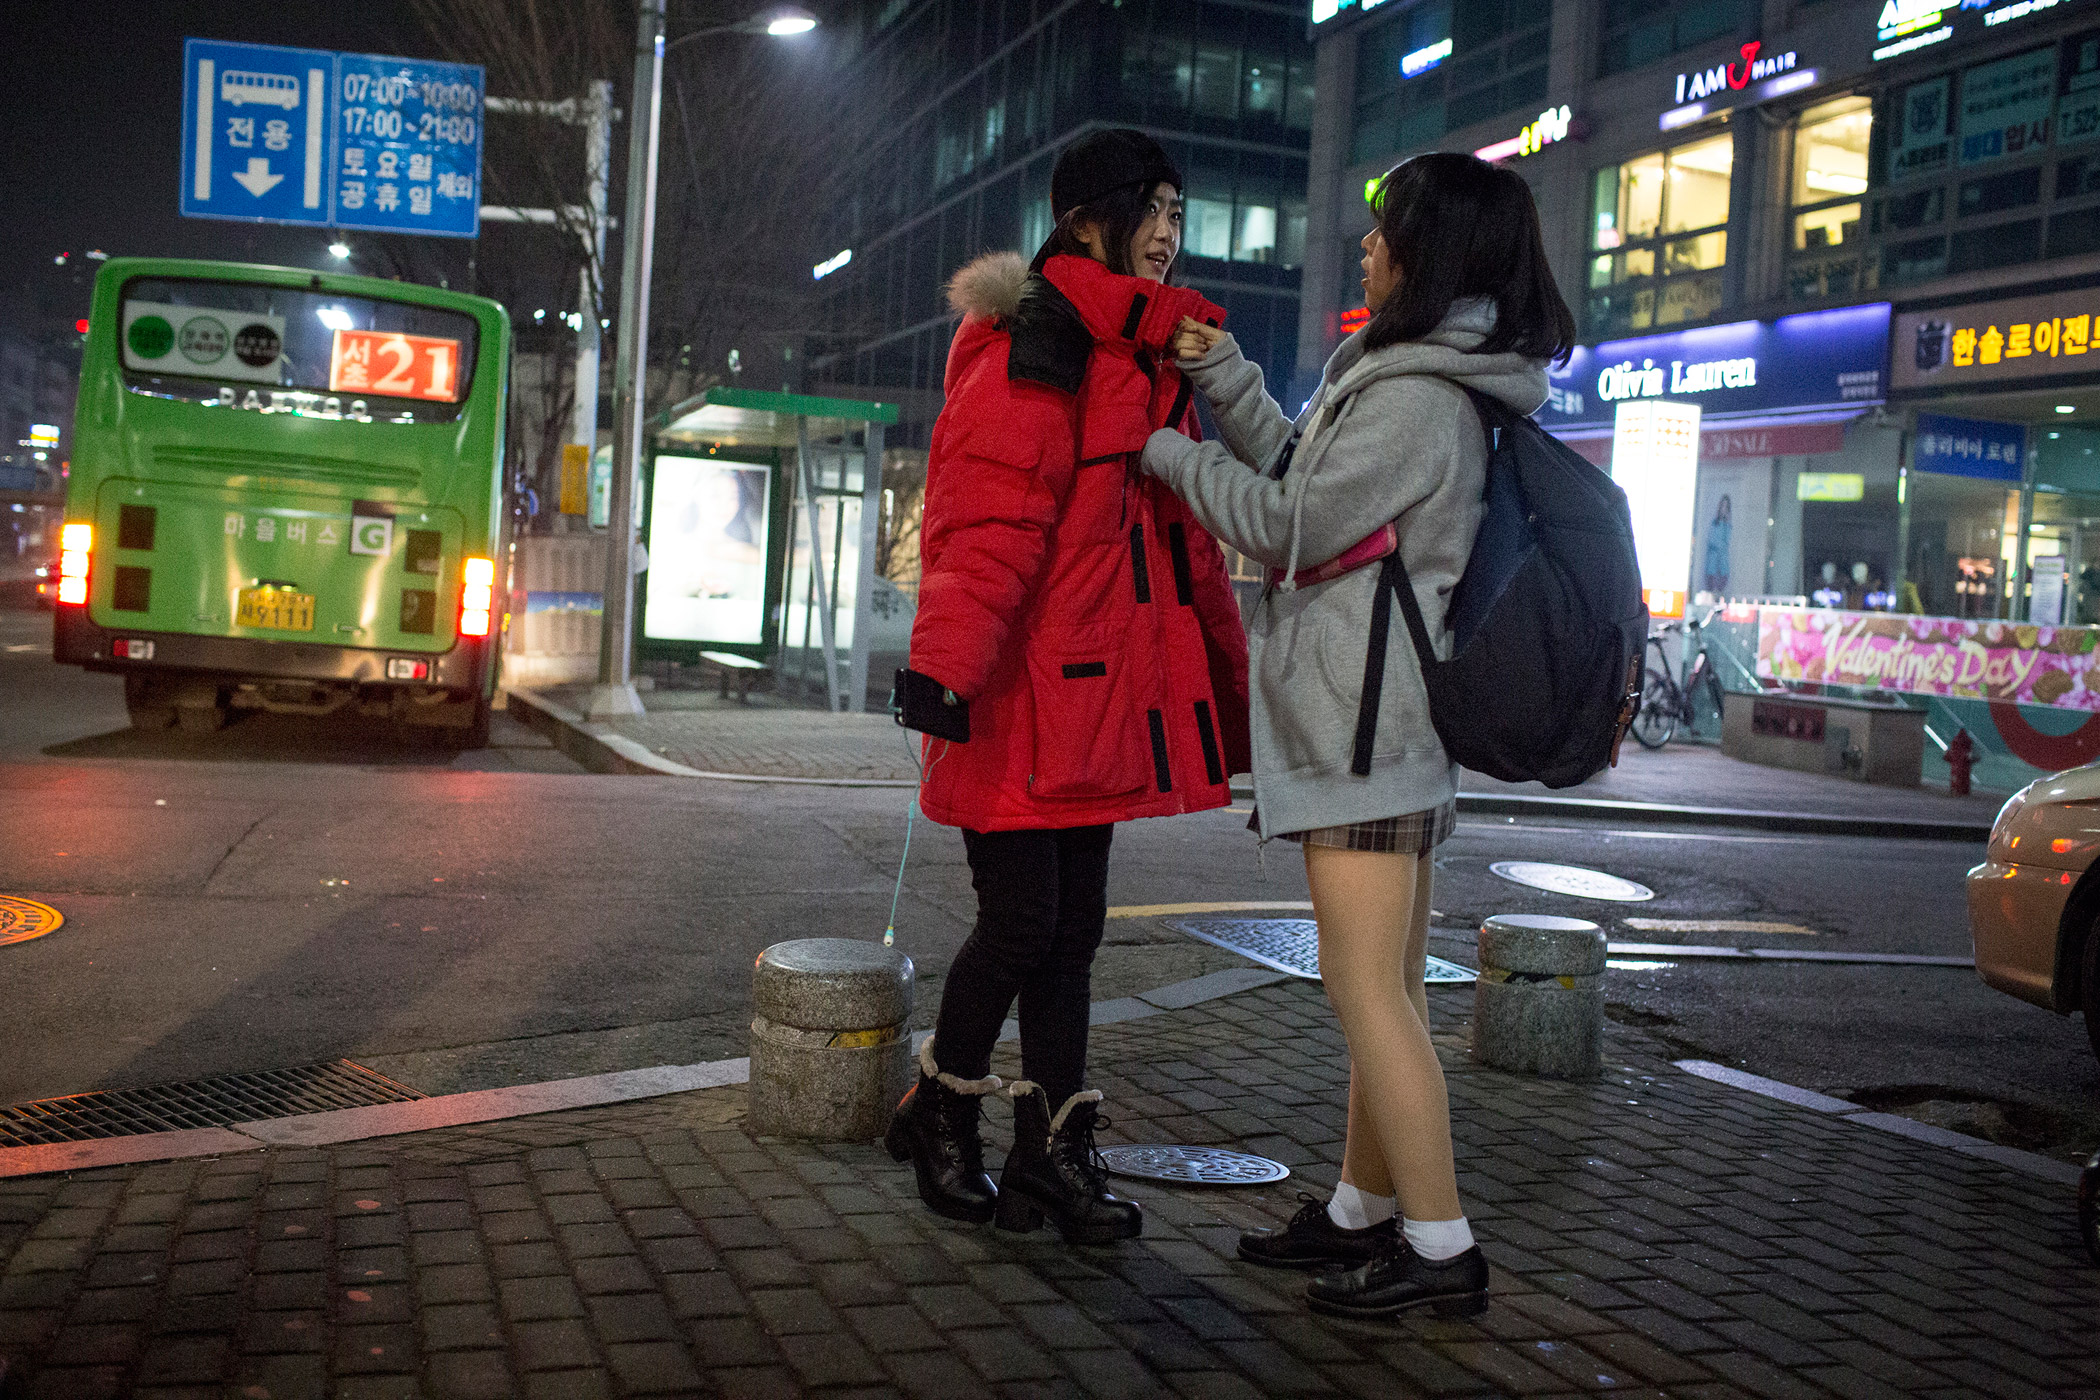 Kyoung-ok zips up Sarah's jacket during a night out Feb. 4, 2015 in Seoul, South Korea. The community of North Korean refugees is growing more tight knit with the help of social networks and human rights groups.